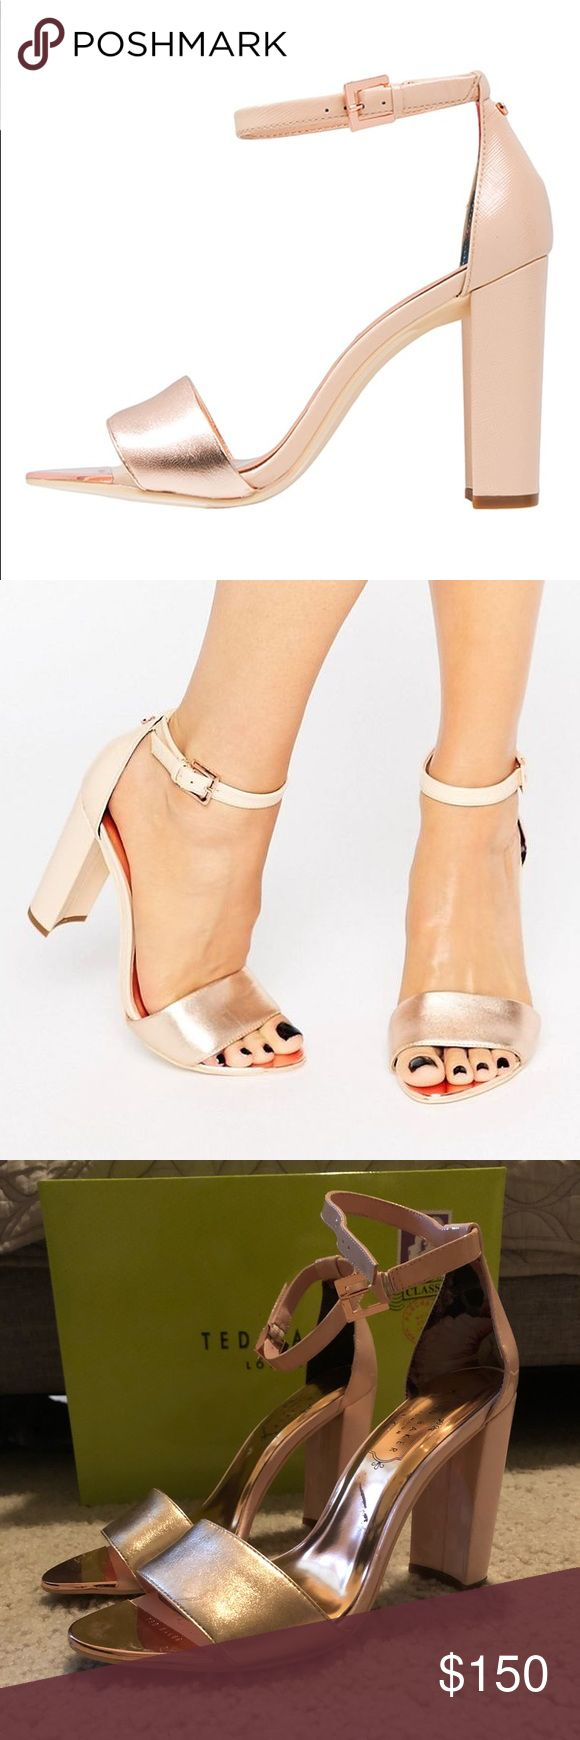 Ted Baker pink and rose gold chunky heels Pale pink and rose gold chunky heels. Size 6. Worn once, in excellent condition! Ted Baker London Shoes Heels